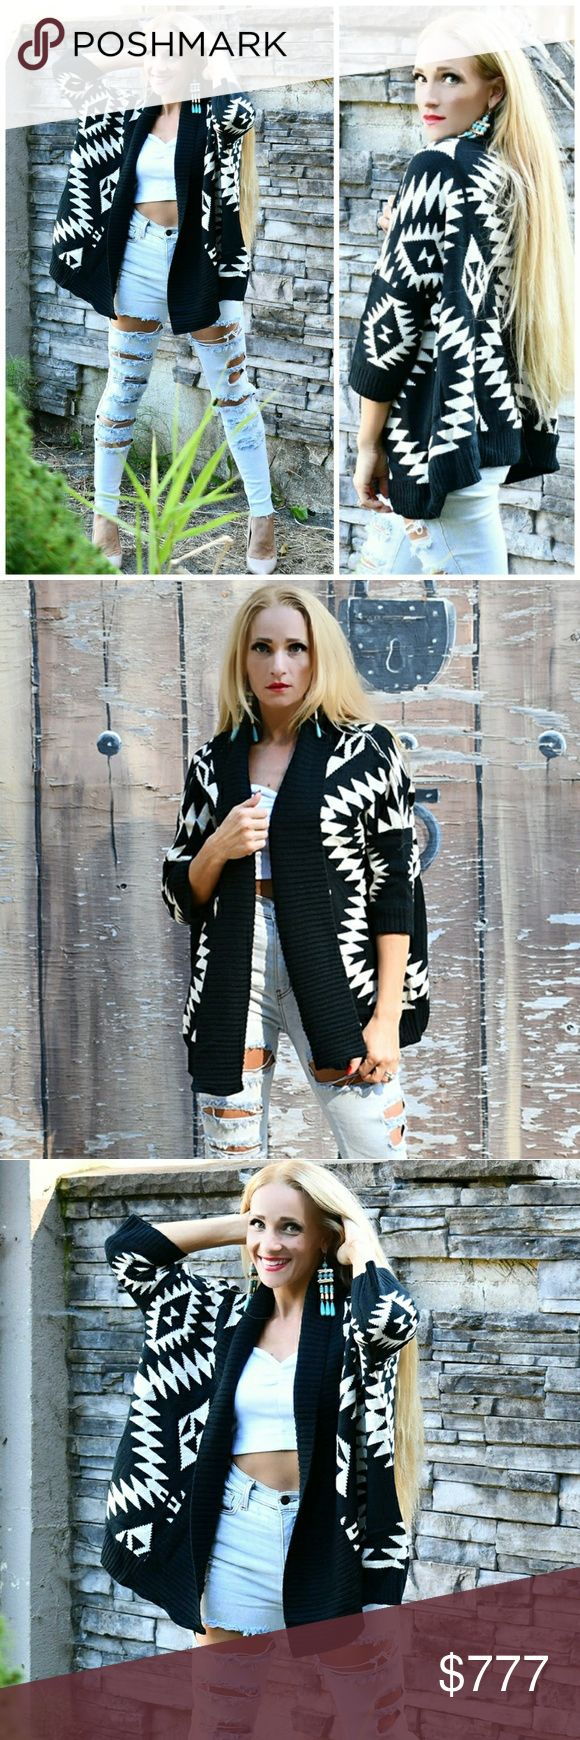 COMFY CARDIGAN Brand new with tag Boutique item  Fabulous open front knit cardigan featuring a fun print! Perfect for the season! Material 100% acrylic . Sweaters